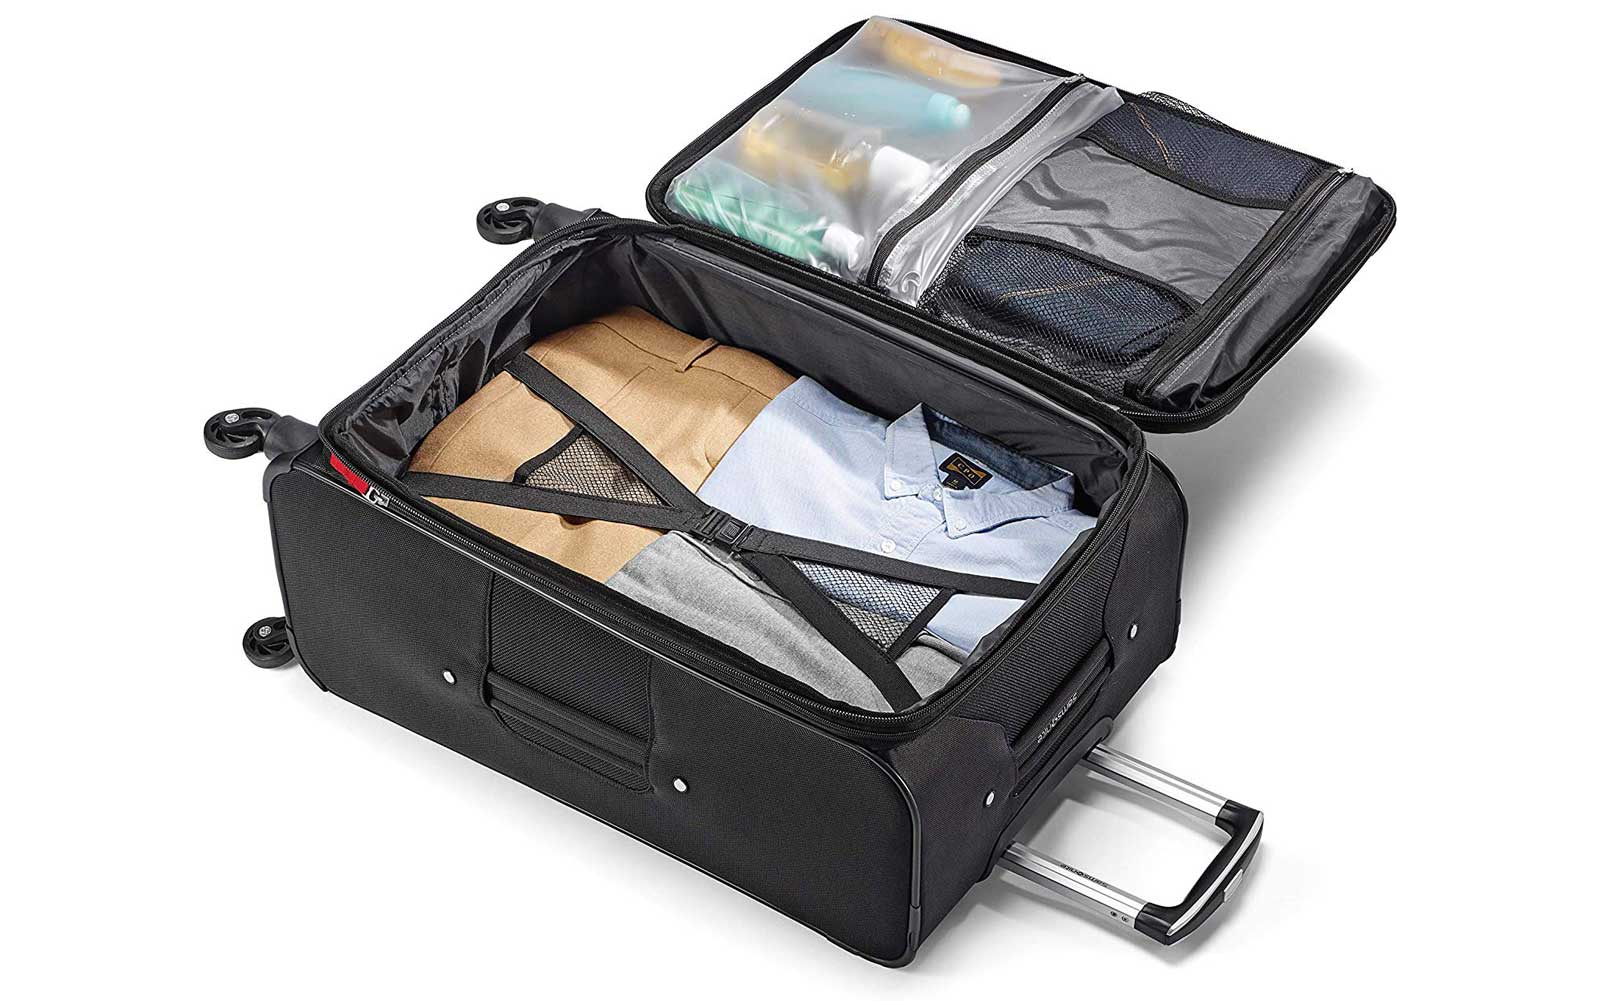 Samsonite Suitcase Interior